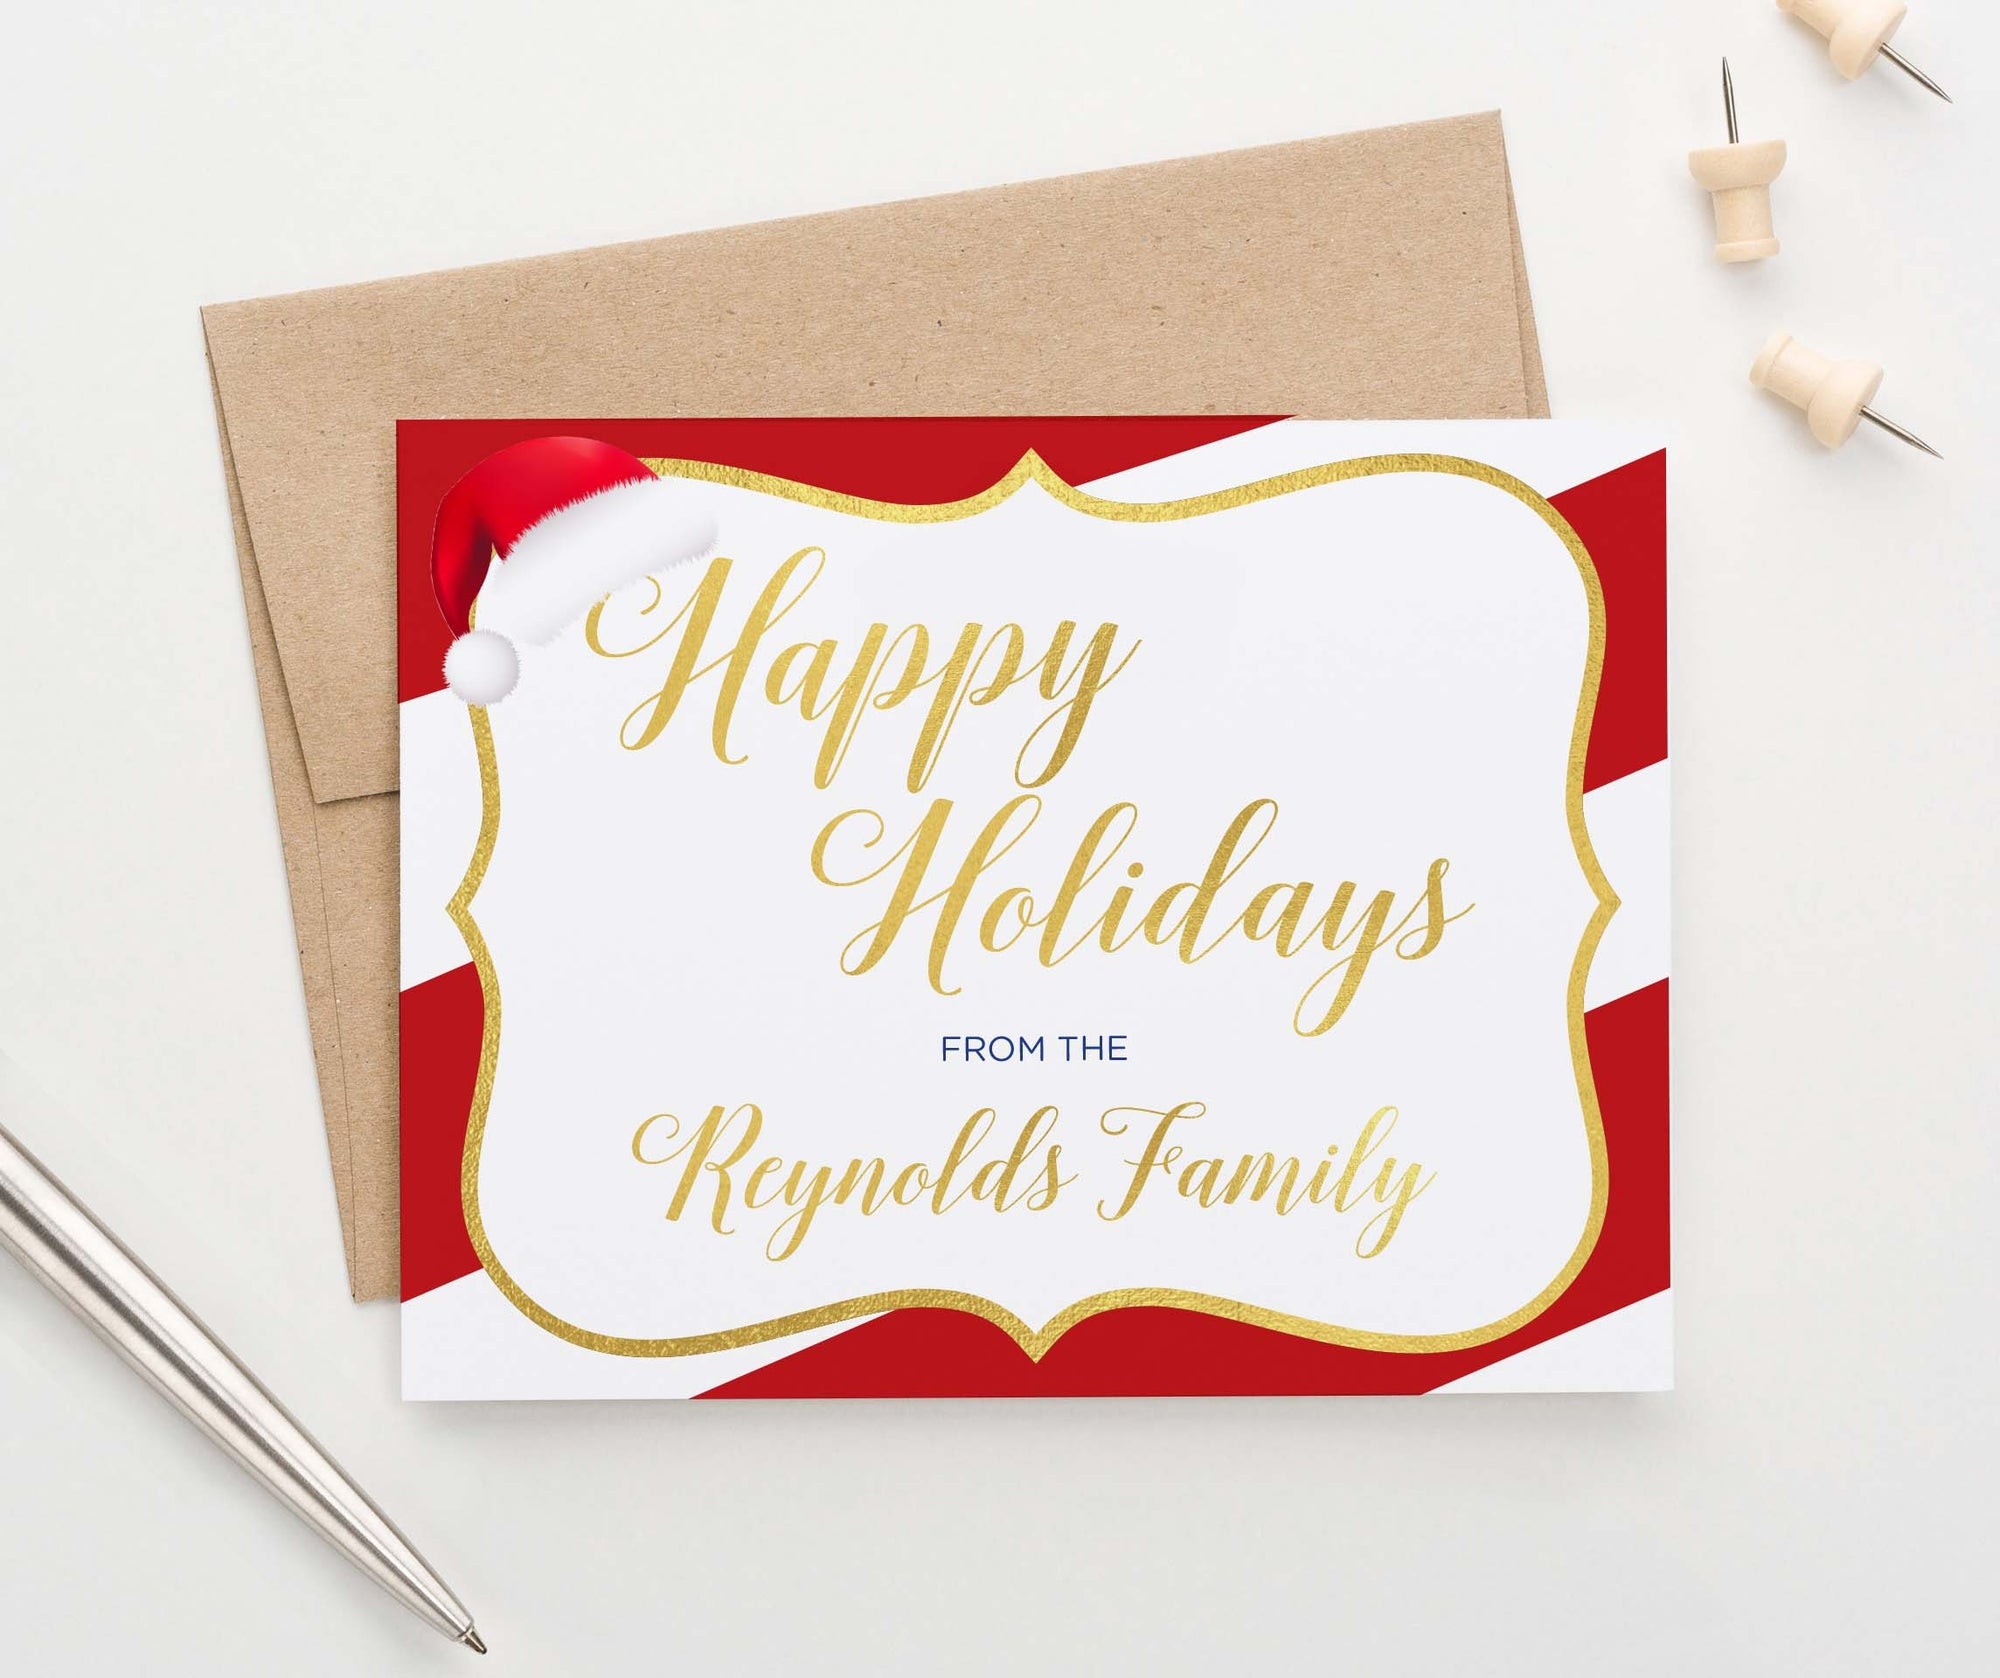 HGC006 personalized holiday cards with candy cane striped border gold modern